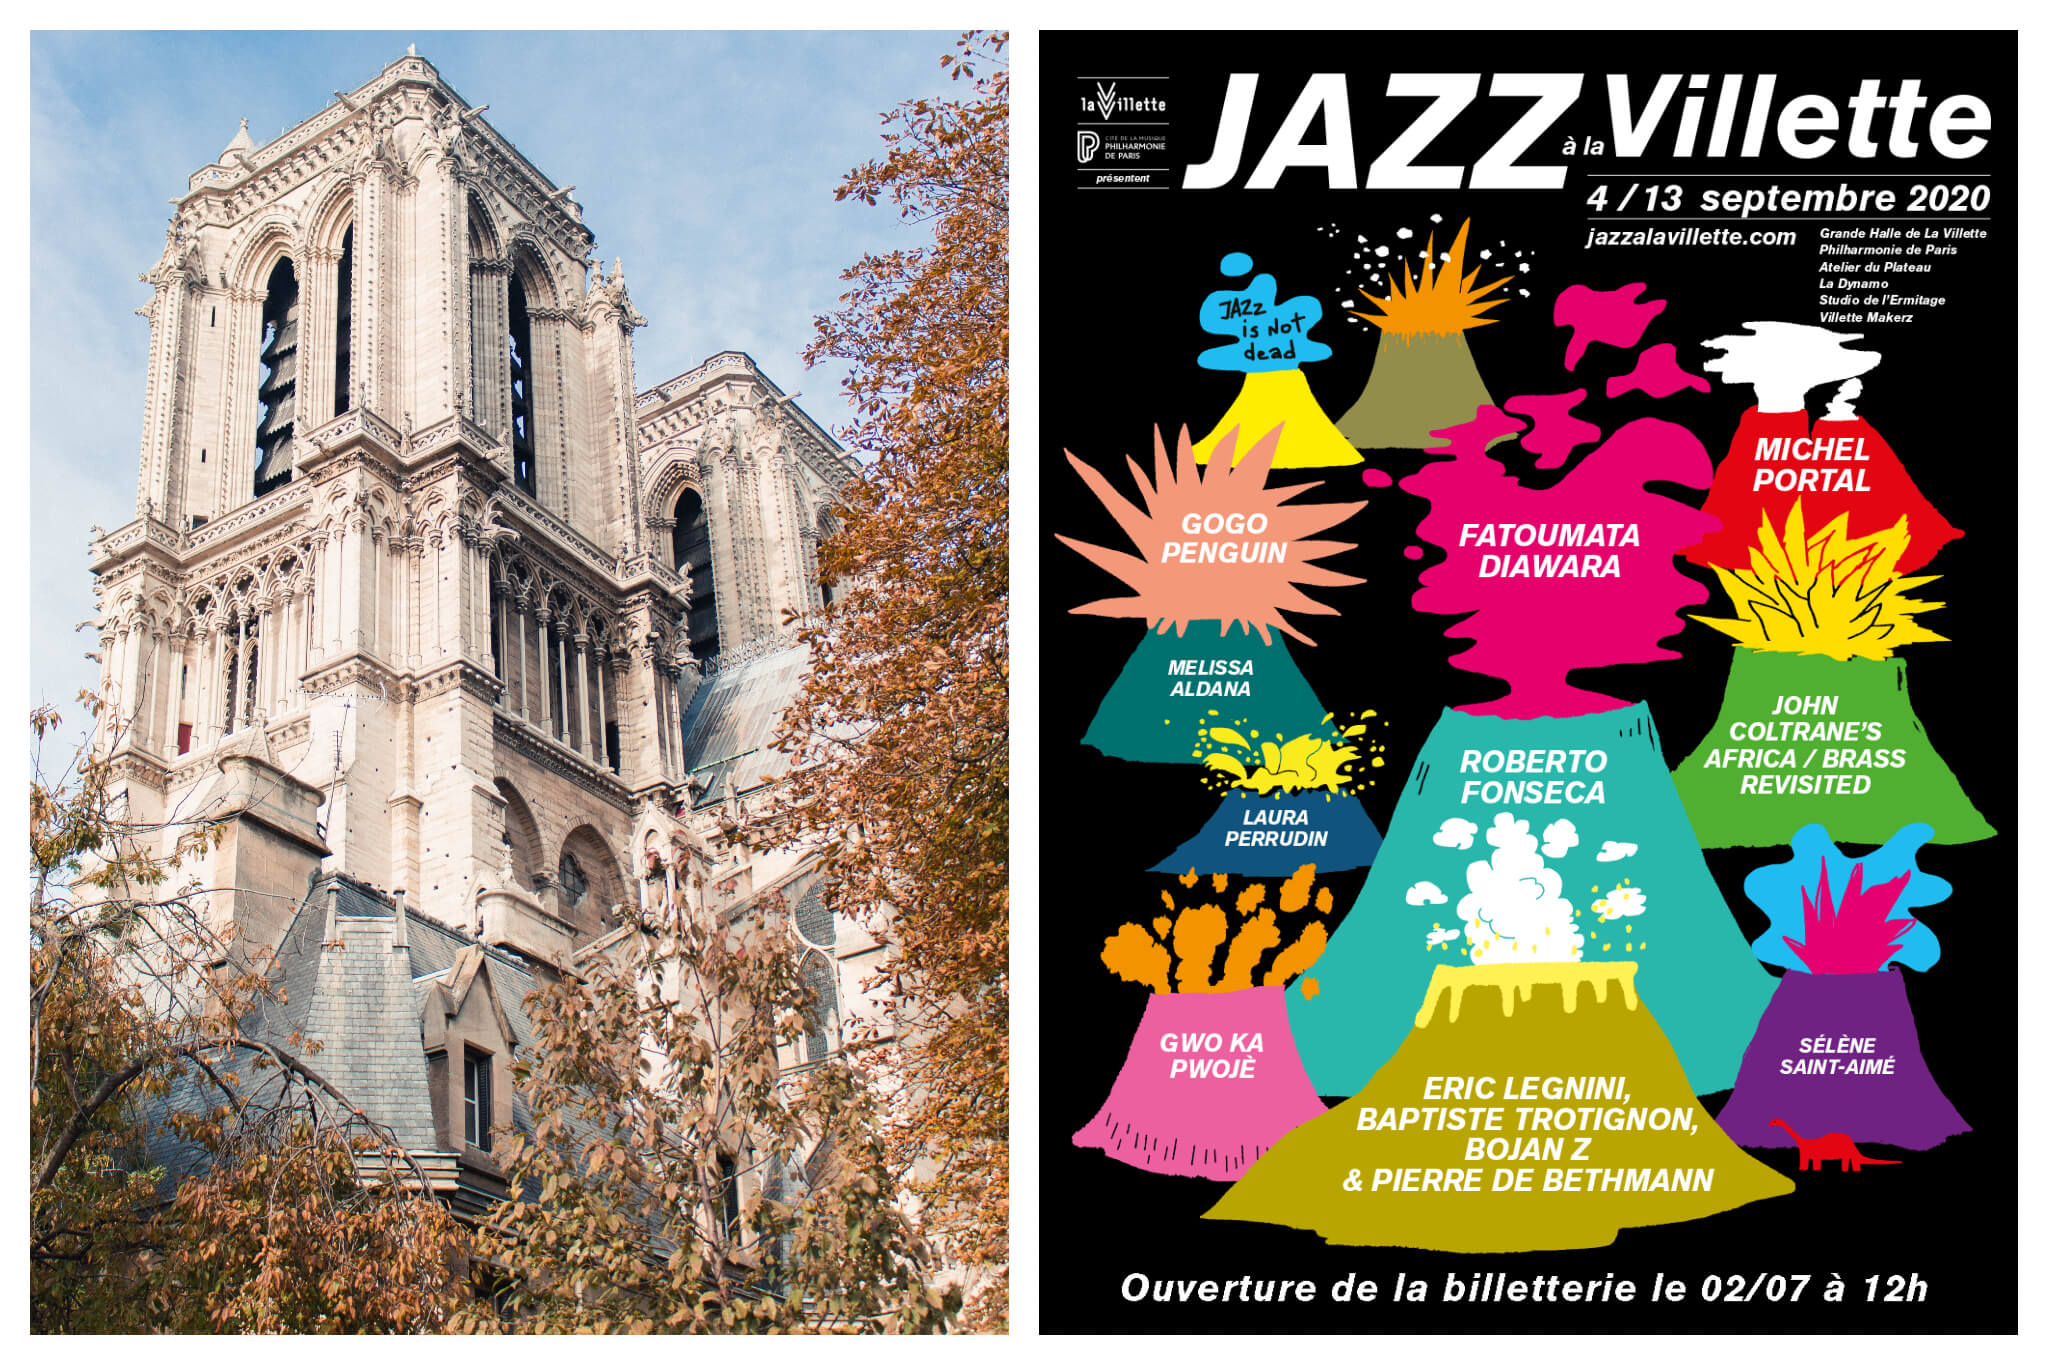 On the left there is a photo of Notre Dame church in Paris, with trees surrounding it filled with autumnal leaves. The photo on the left is a flyer for Jazz à la Villette lasting from 4-14 September 2020. There are drawings of 11 volcanoes underneath the text in white - each a different bright colour and containing the names of the artists performing.